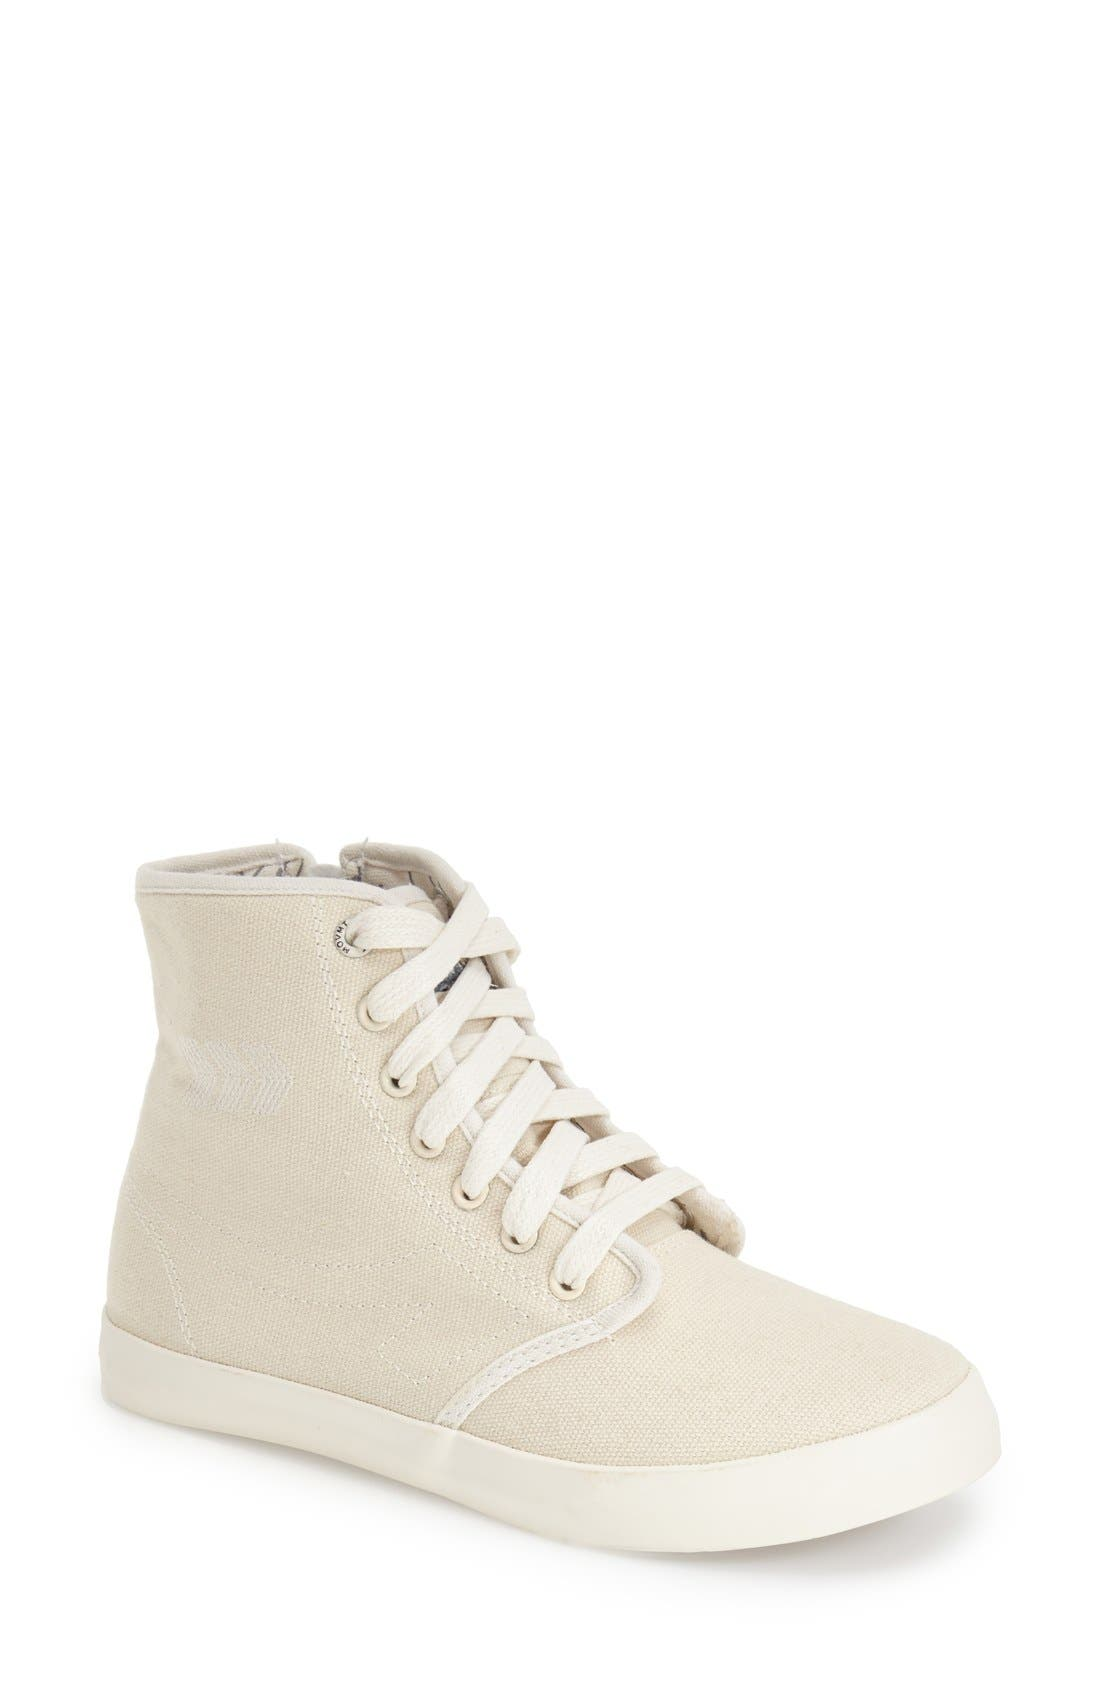 Main Image - The People's Movement 'Marcos' High Top Sneaker (Women)